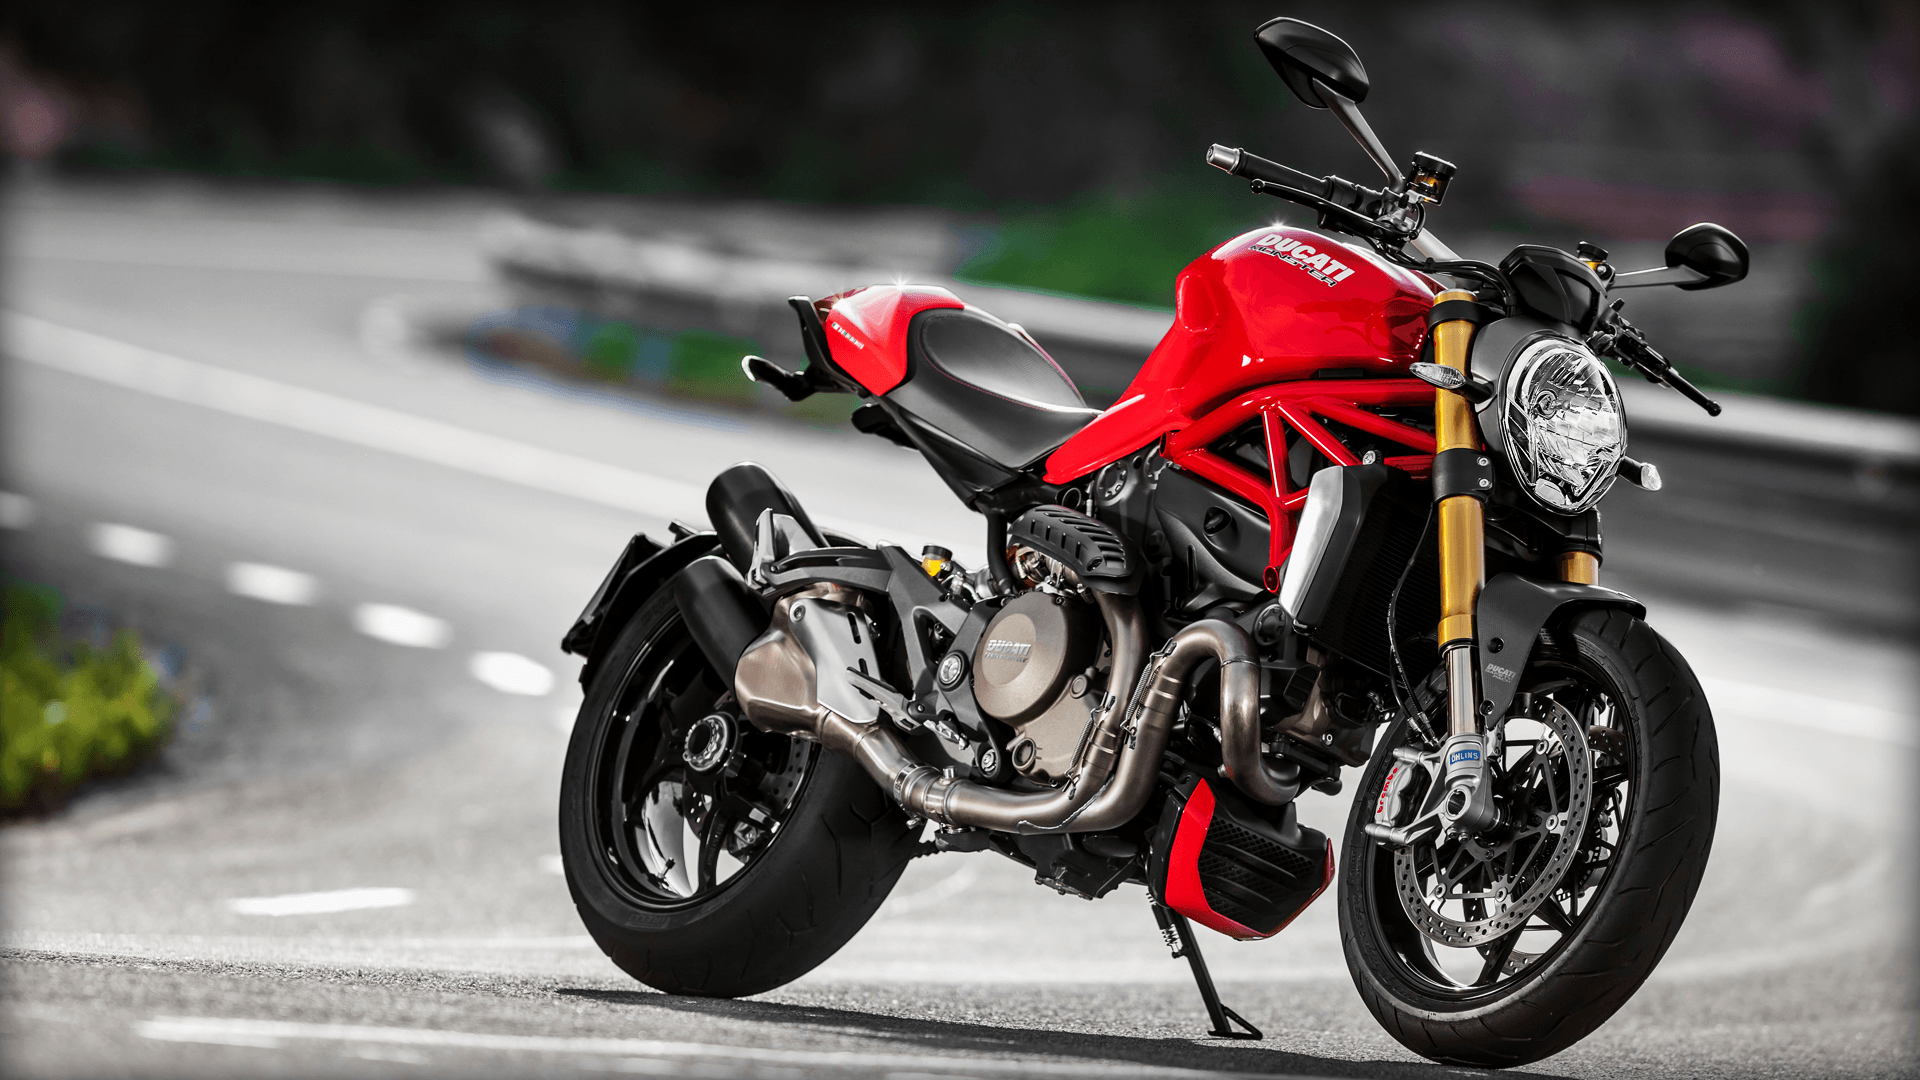 Ducati Wallpapers - Wallpaper Cave